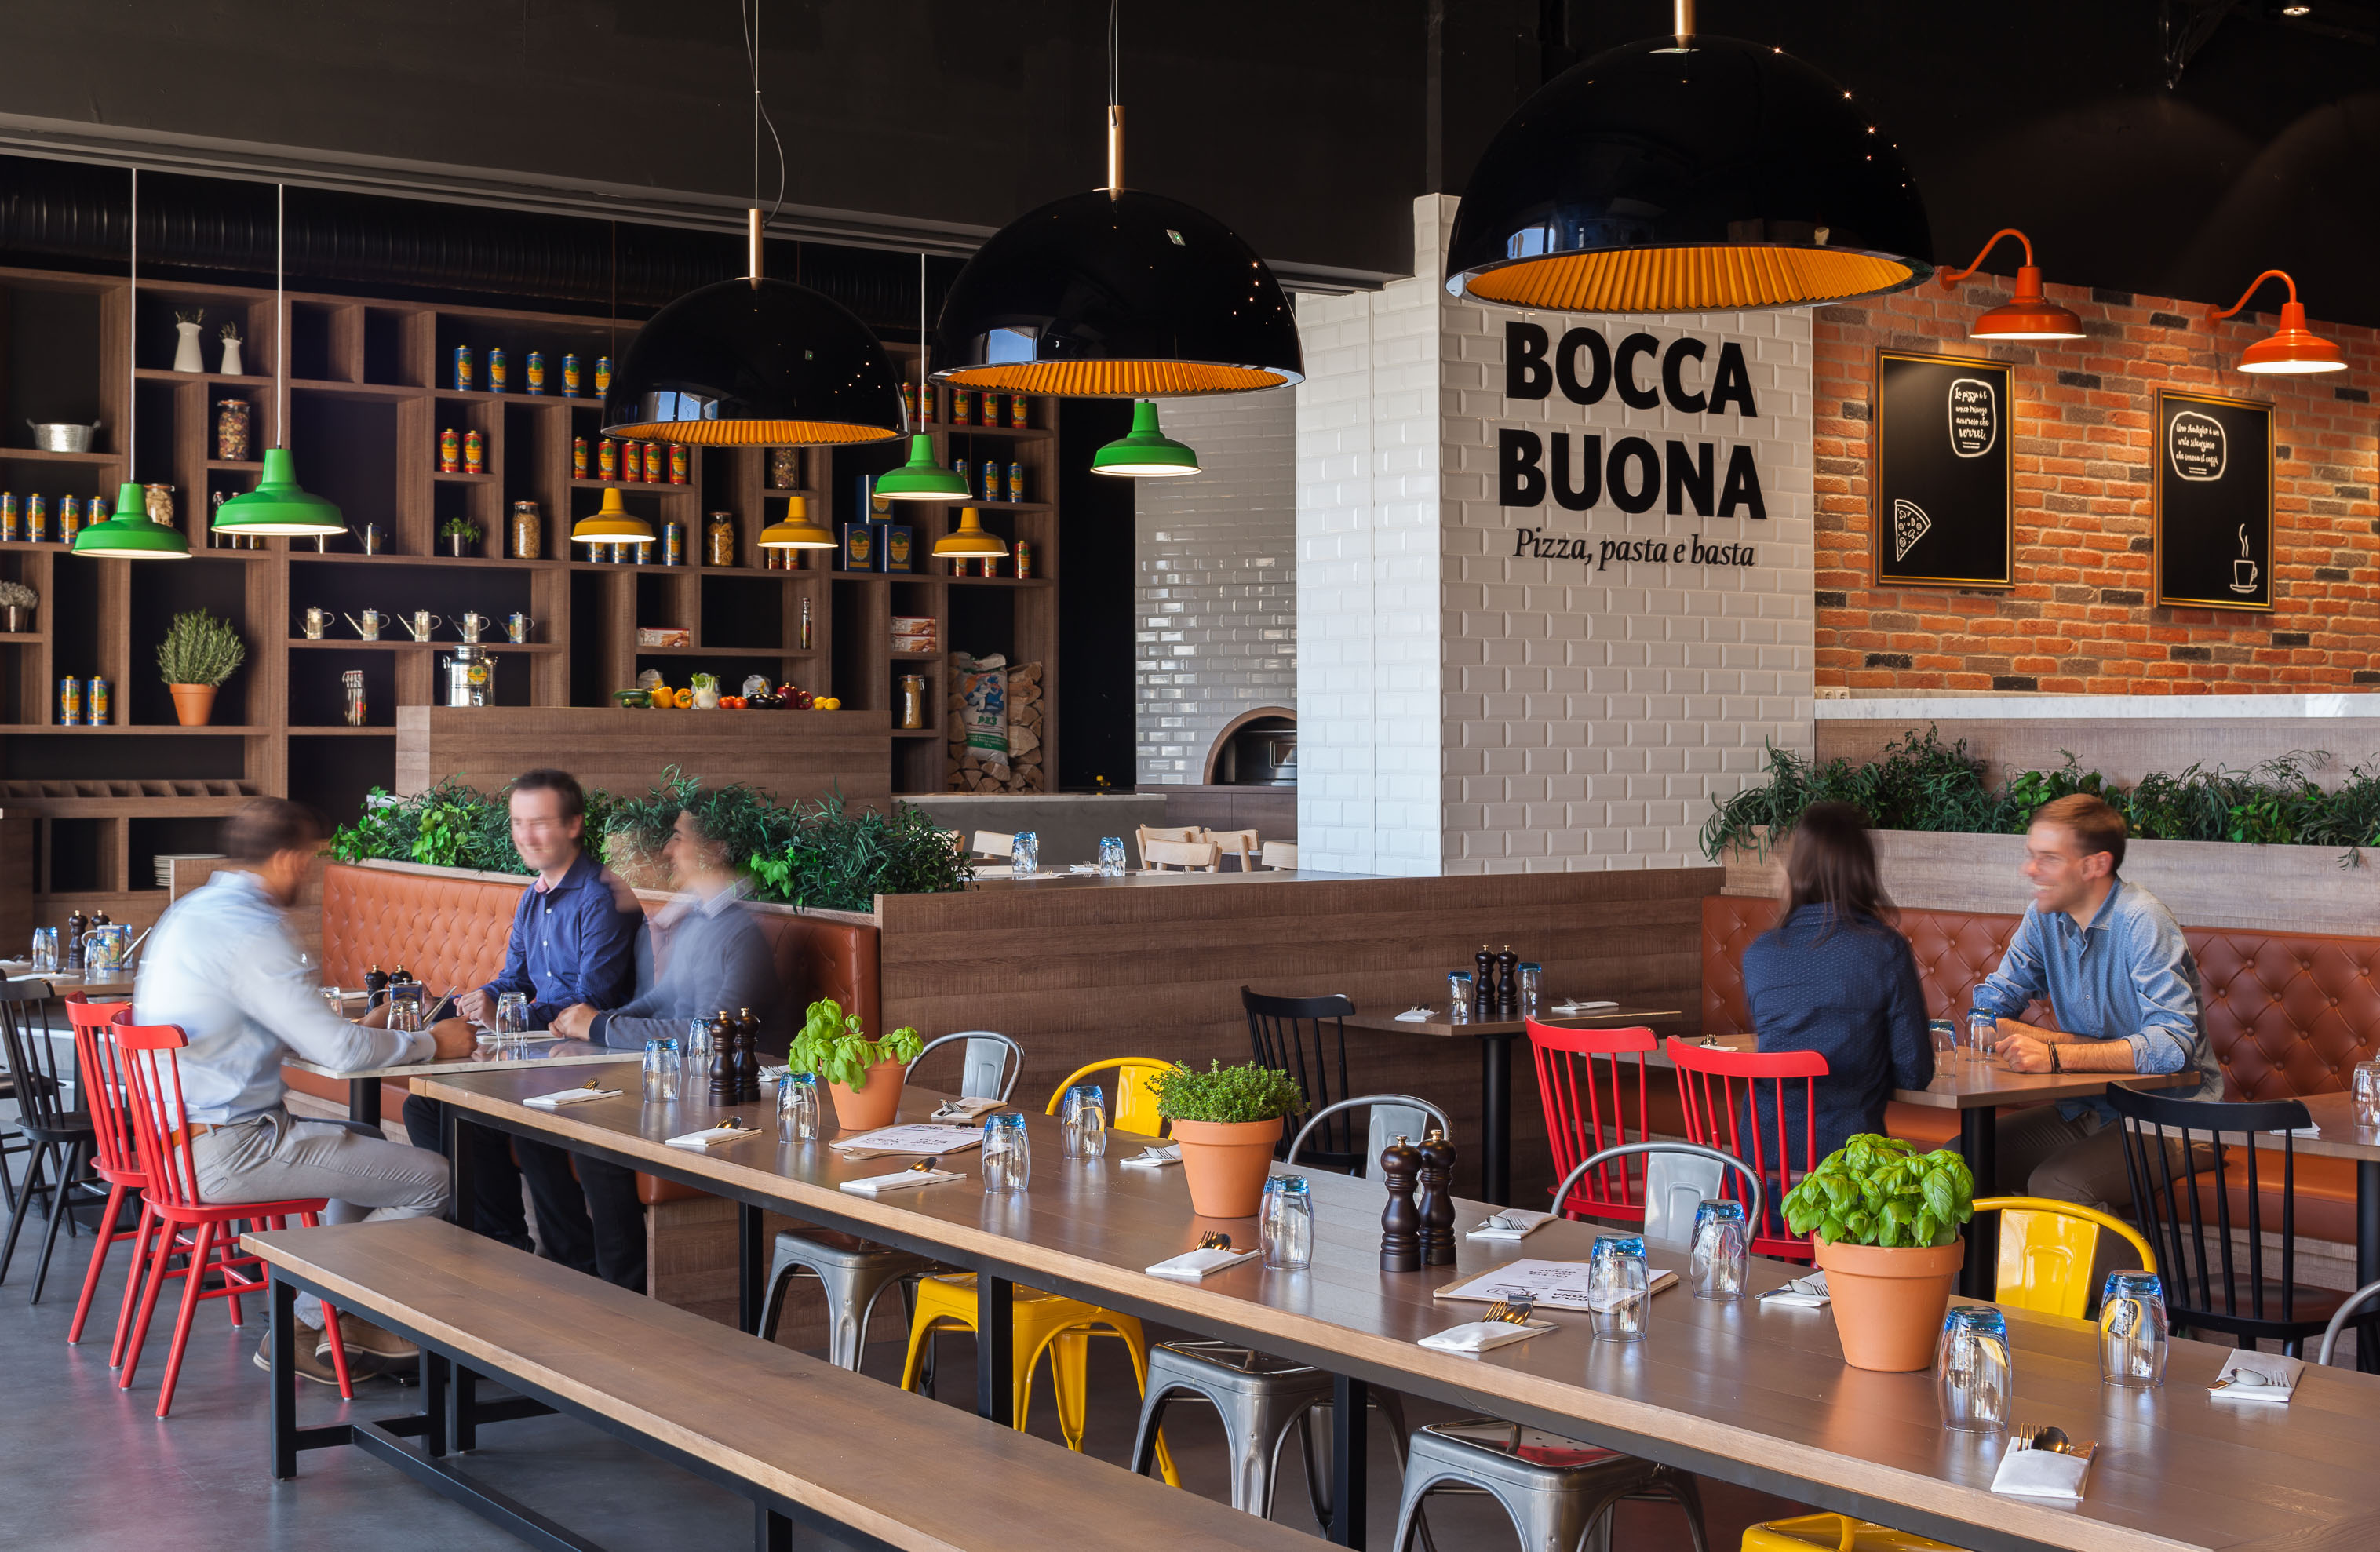 Restaurants & Hotels-Bocca Buona Nice-Restaurants